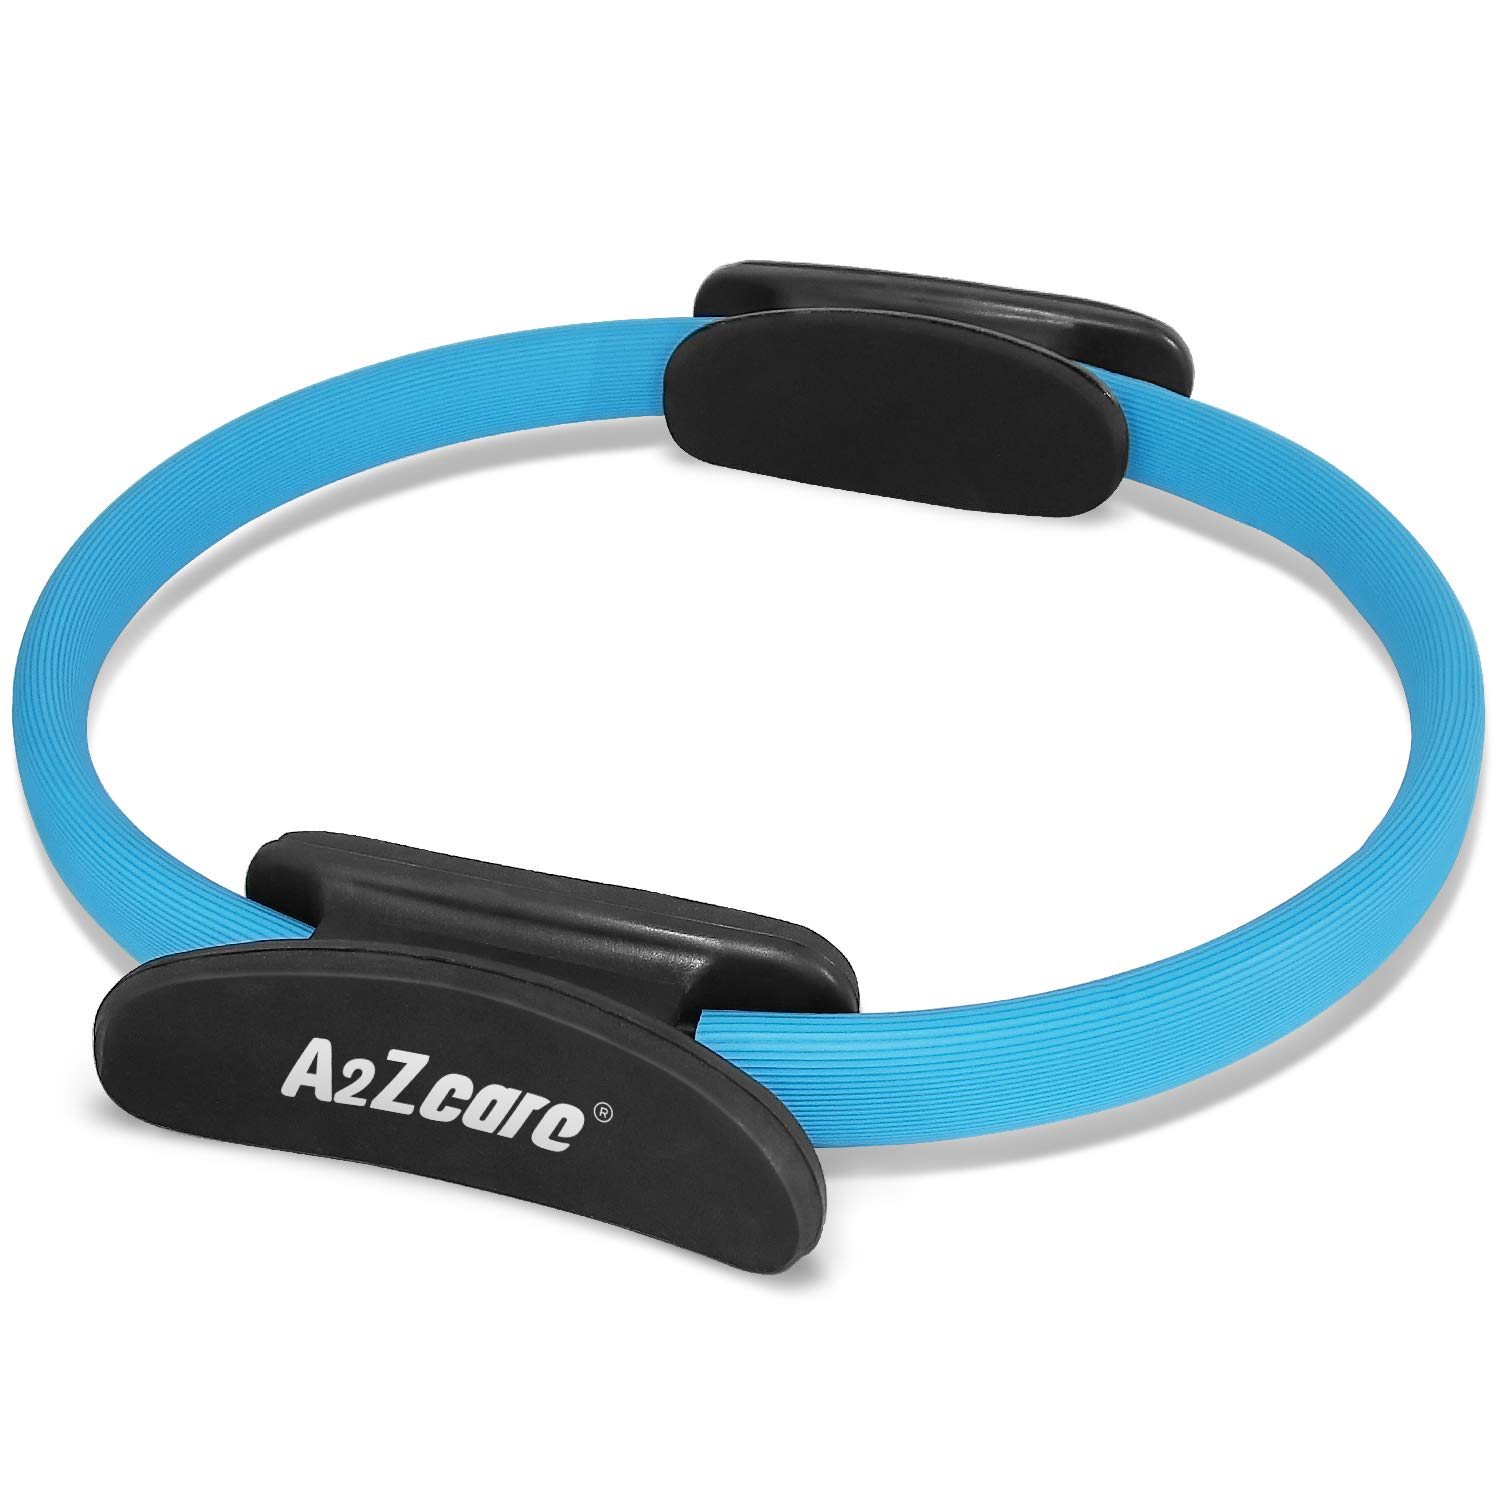 A2ZCARE Pilates Ring Magic Circle, Gym, Aerobics, Pilates, Yoga for Toning and Strengthening Thighs, Abs and Legs (12…